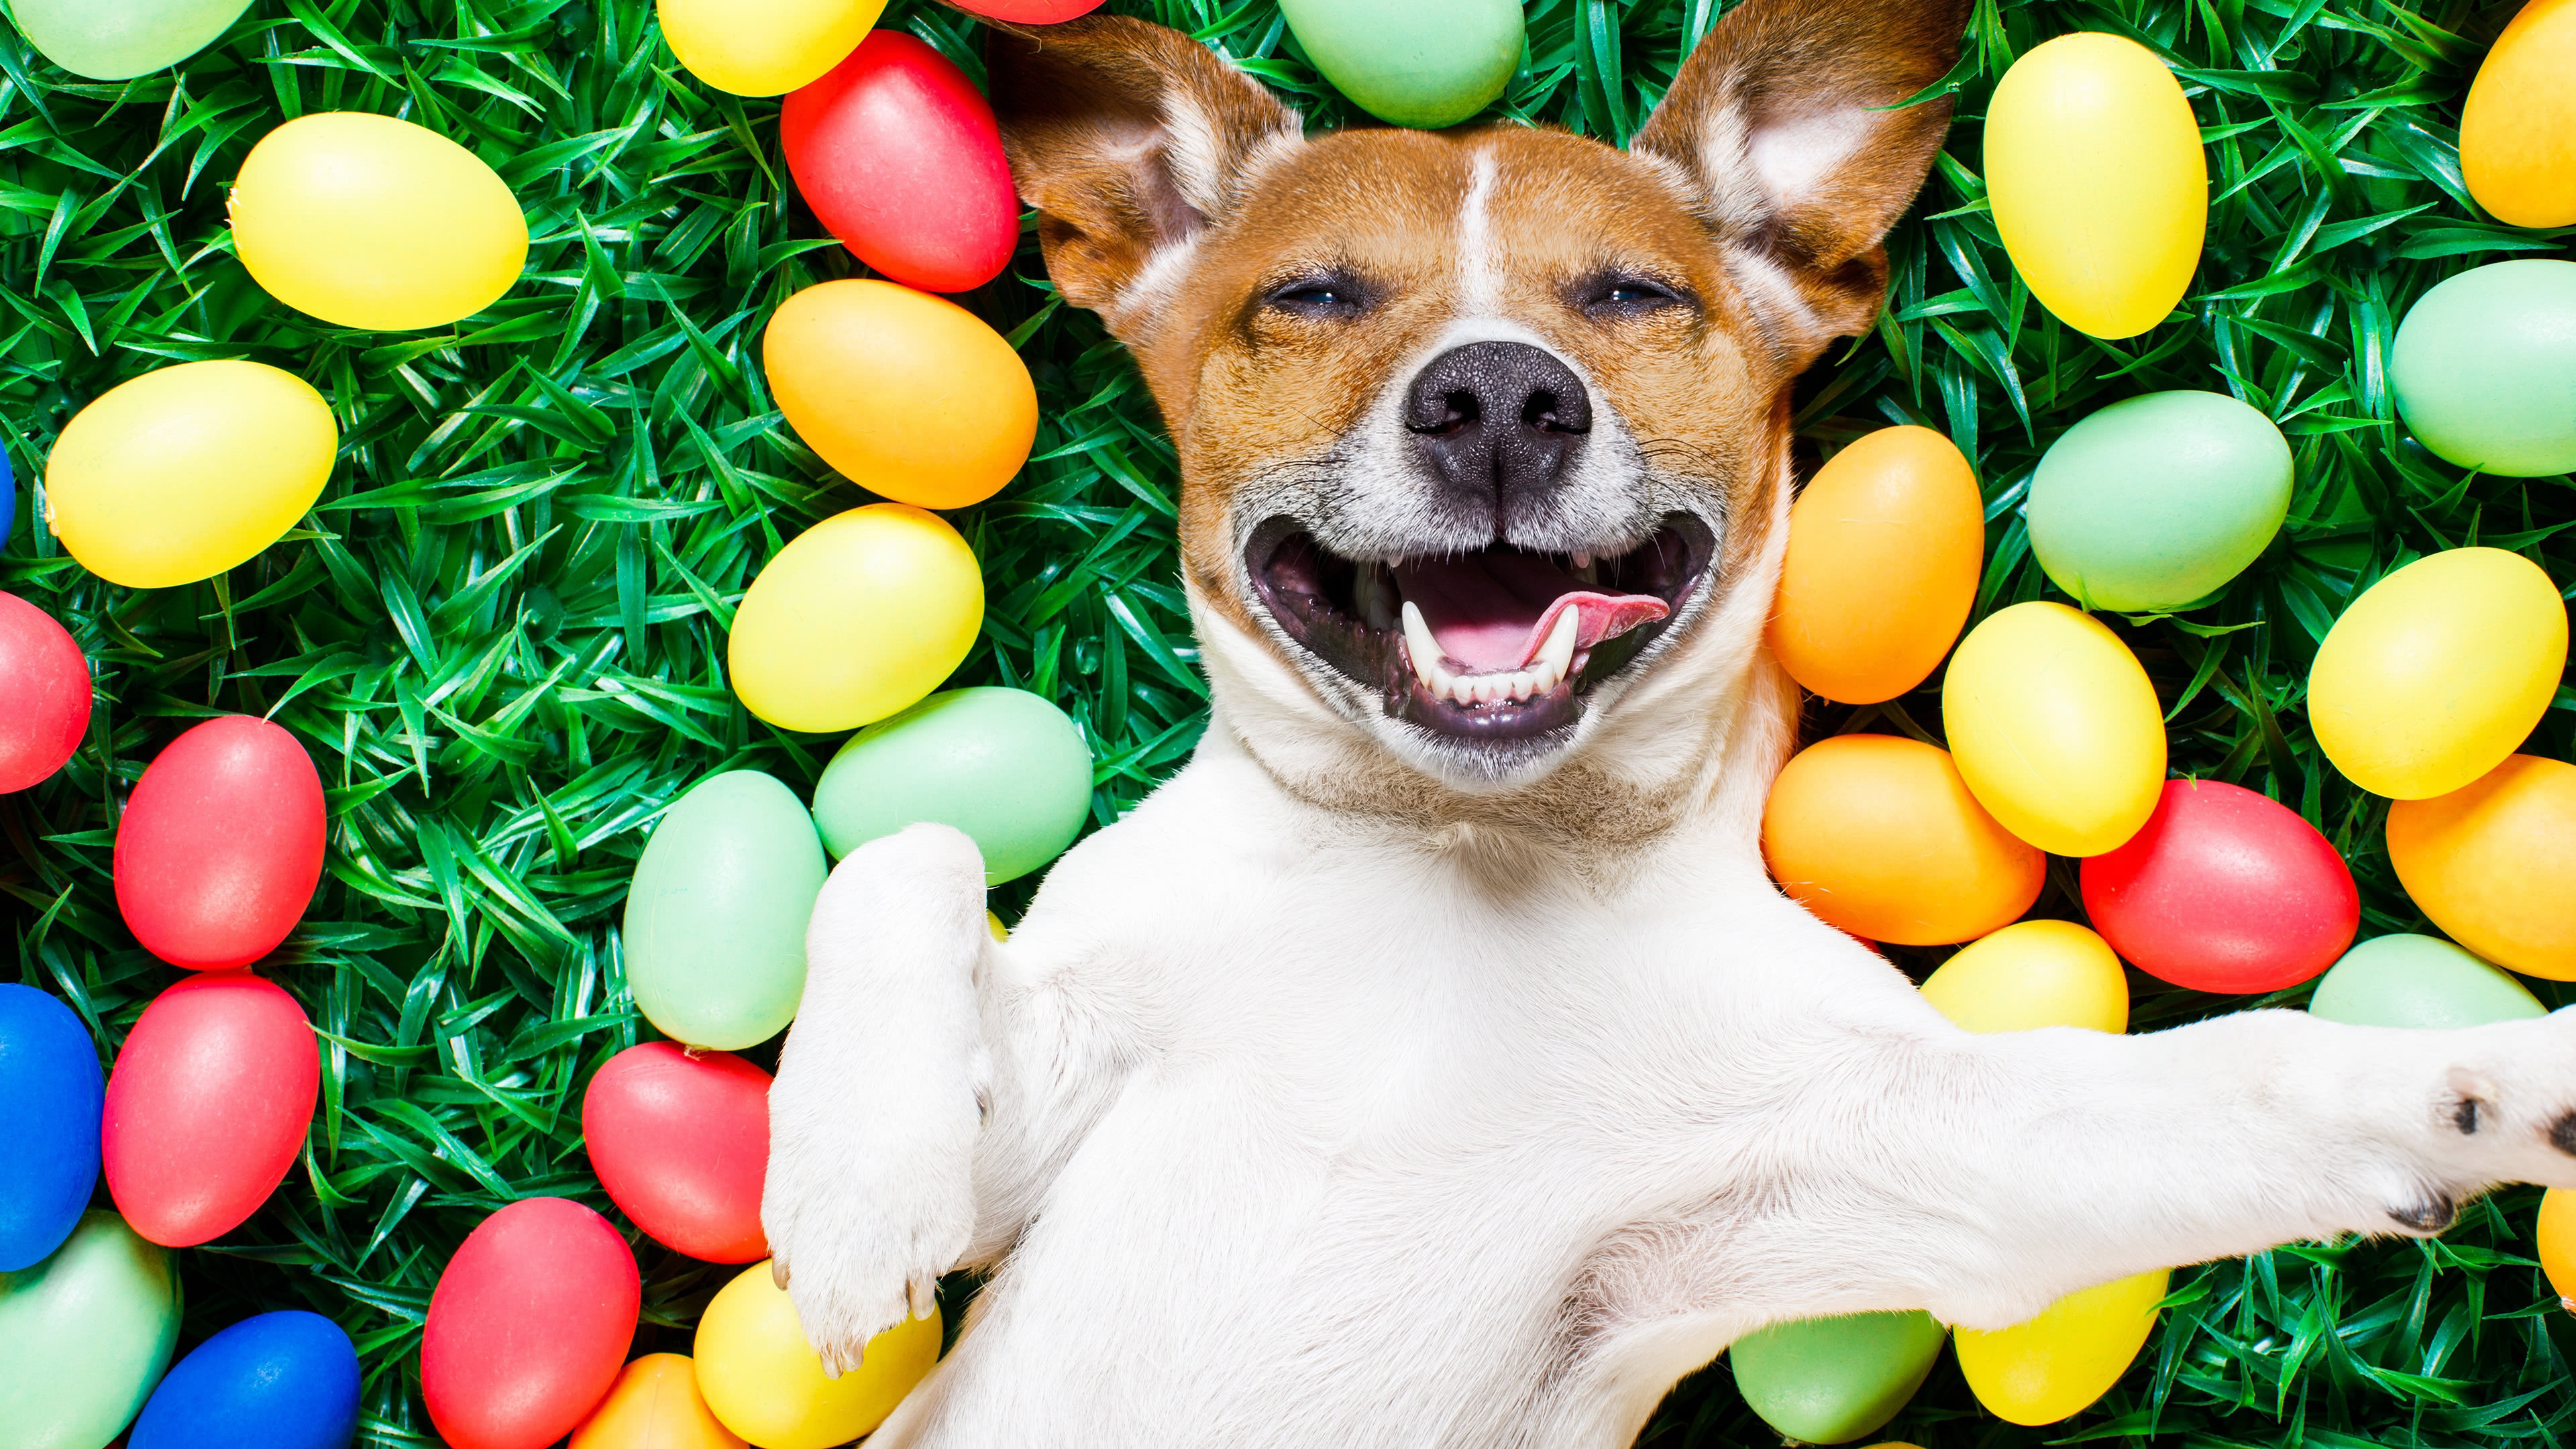 Dog Lying Down On Easter Eggs 4k Ultra Hd Wallpaper Background Image 3840x2160 Id 1071252 Wallpaper Abyss